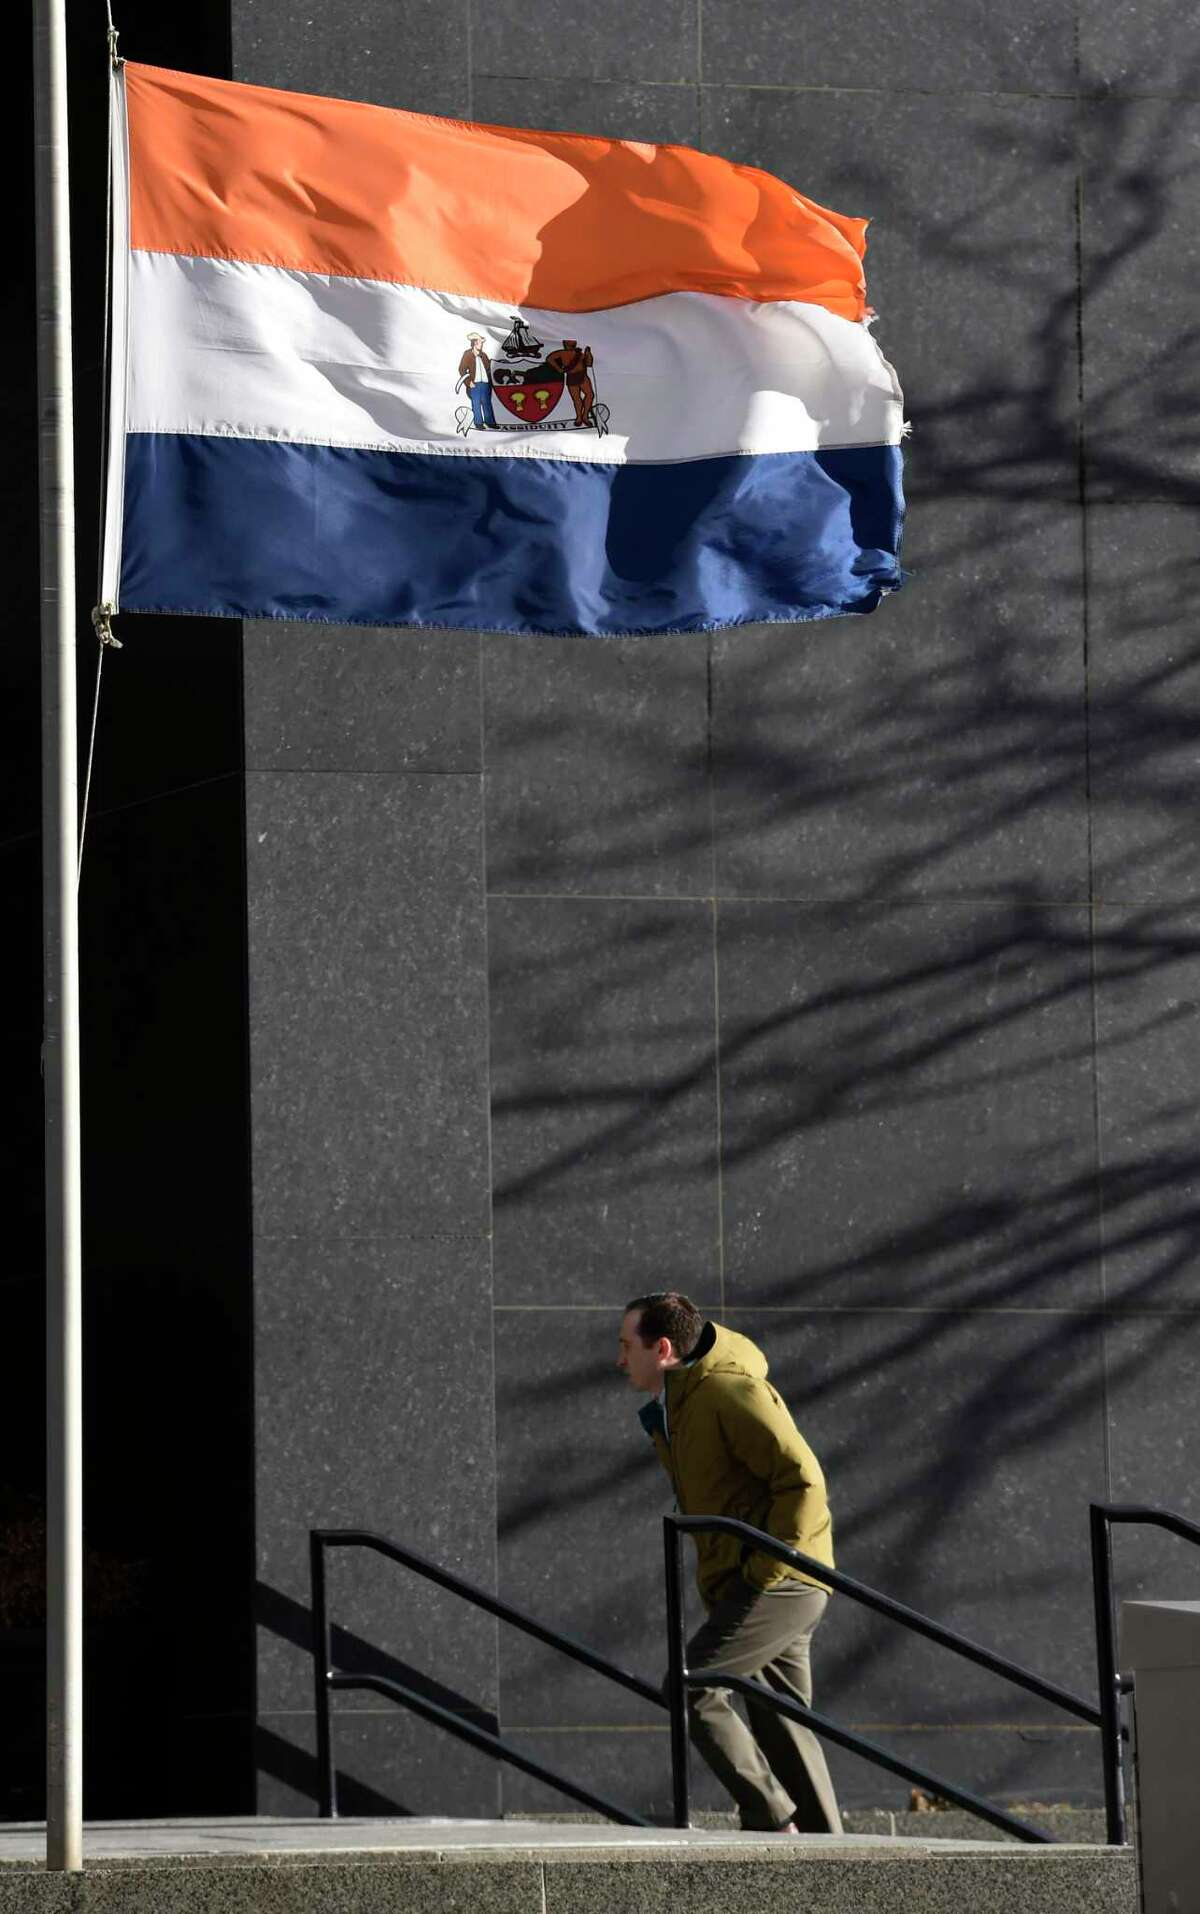 High winds keep the flag straight out in downtown Monday morning, Jan. 5, 2015, in Albany, N.Y. (Skip Dickstein/Times Union)